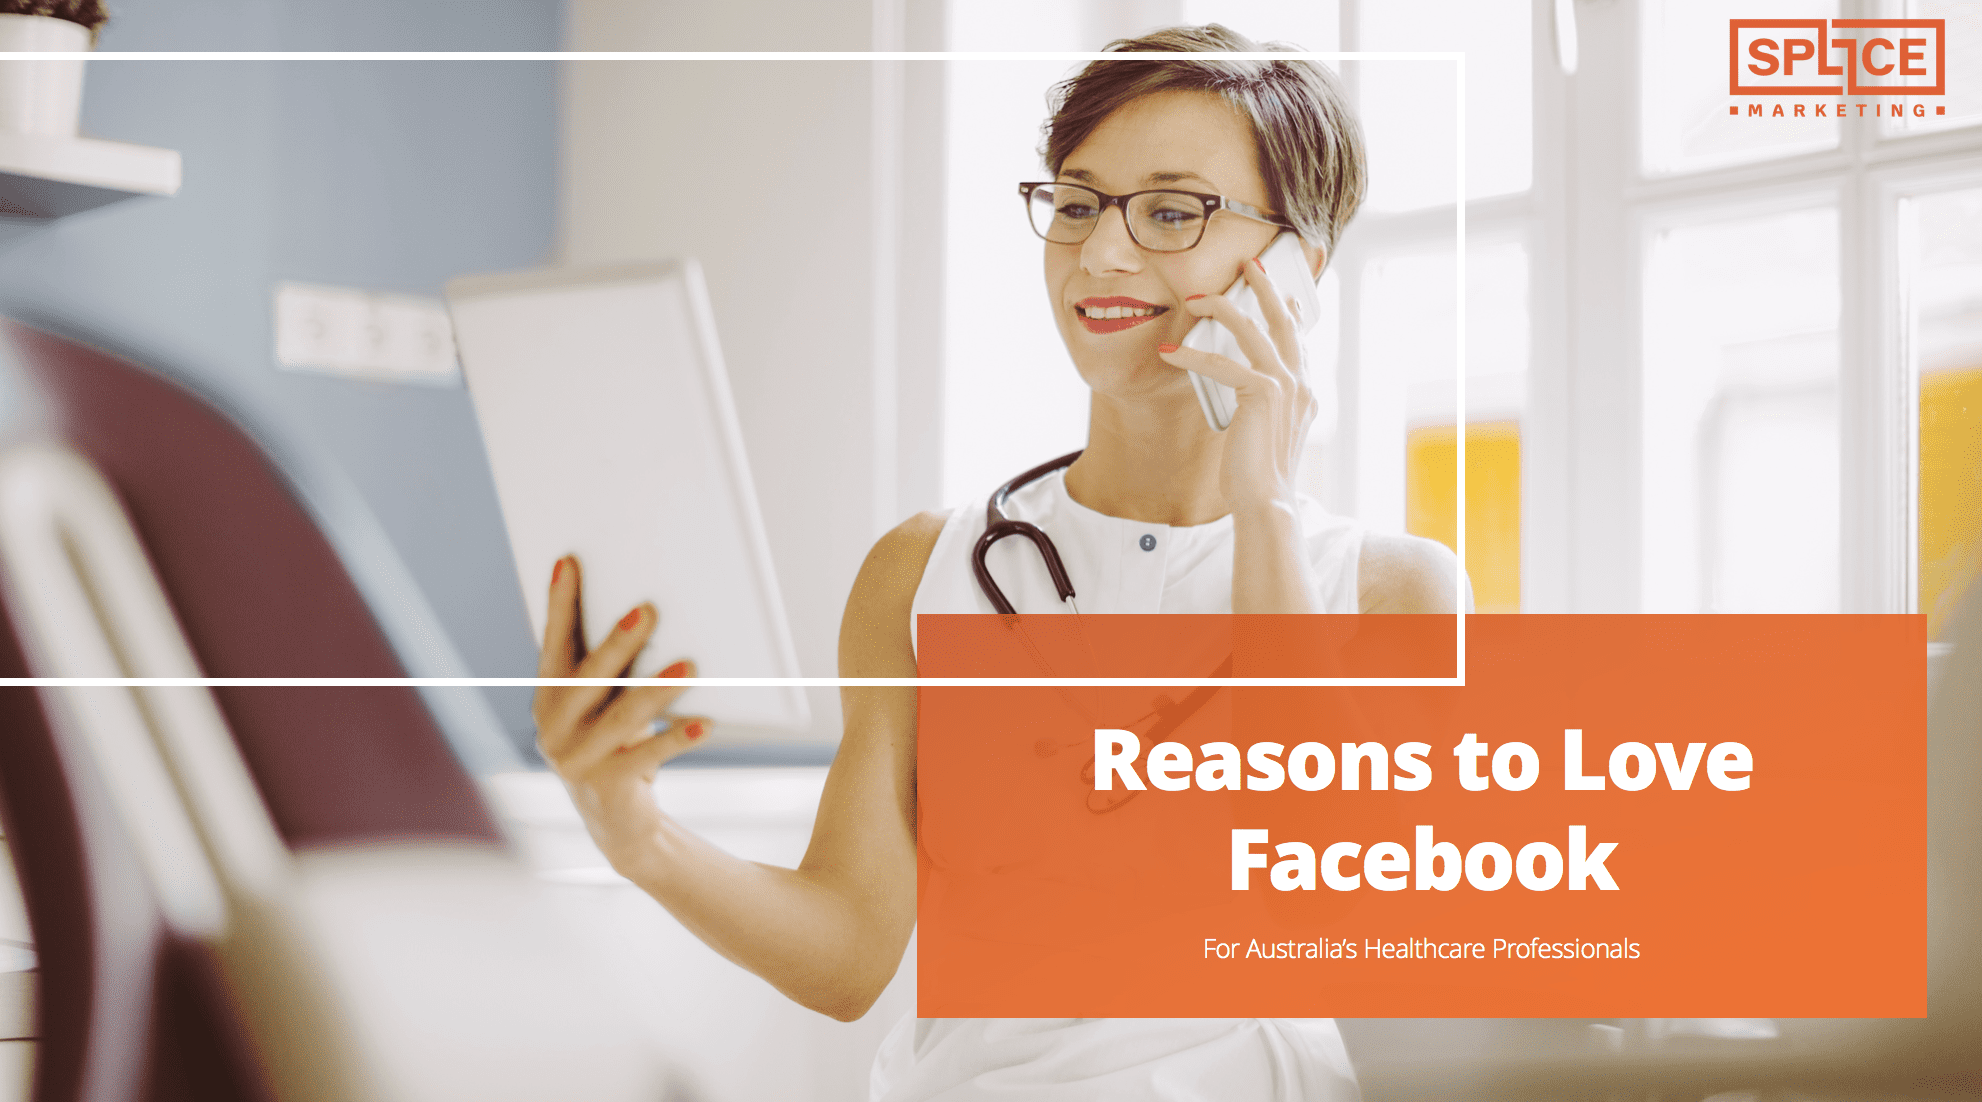 Reasons Healthcare Professionals Should Love Facebook